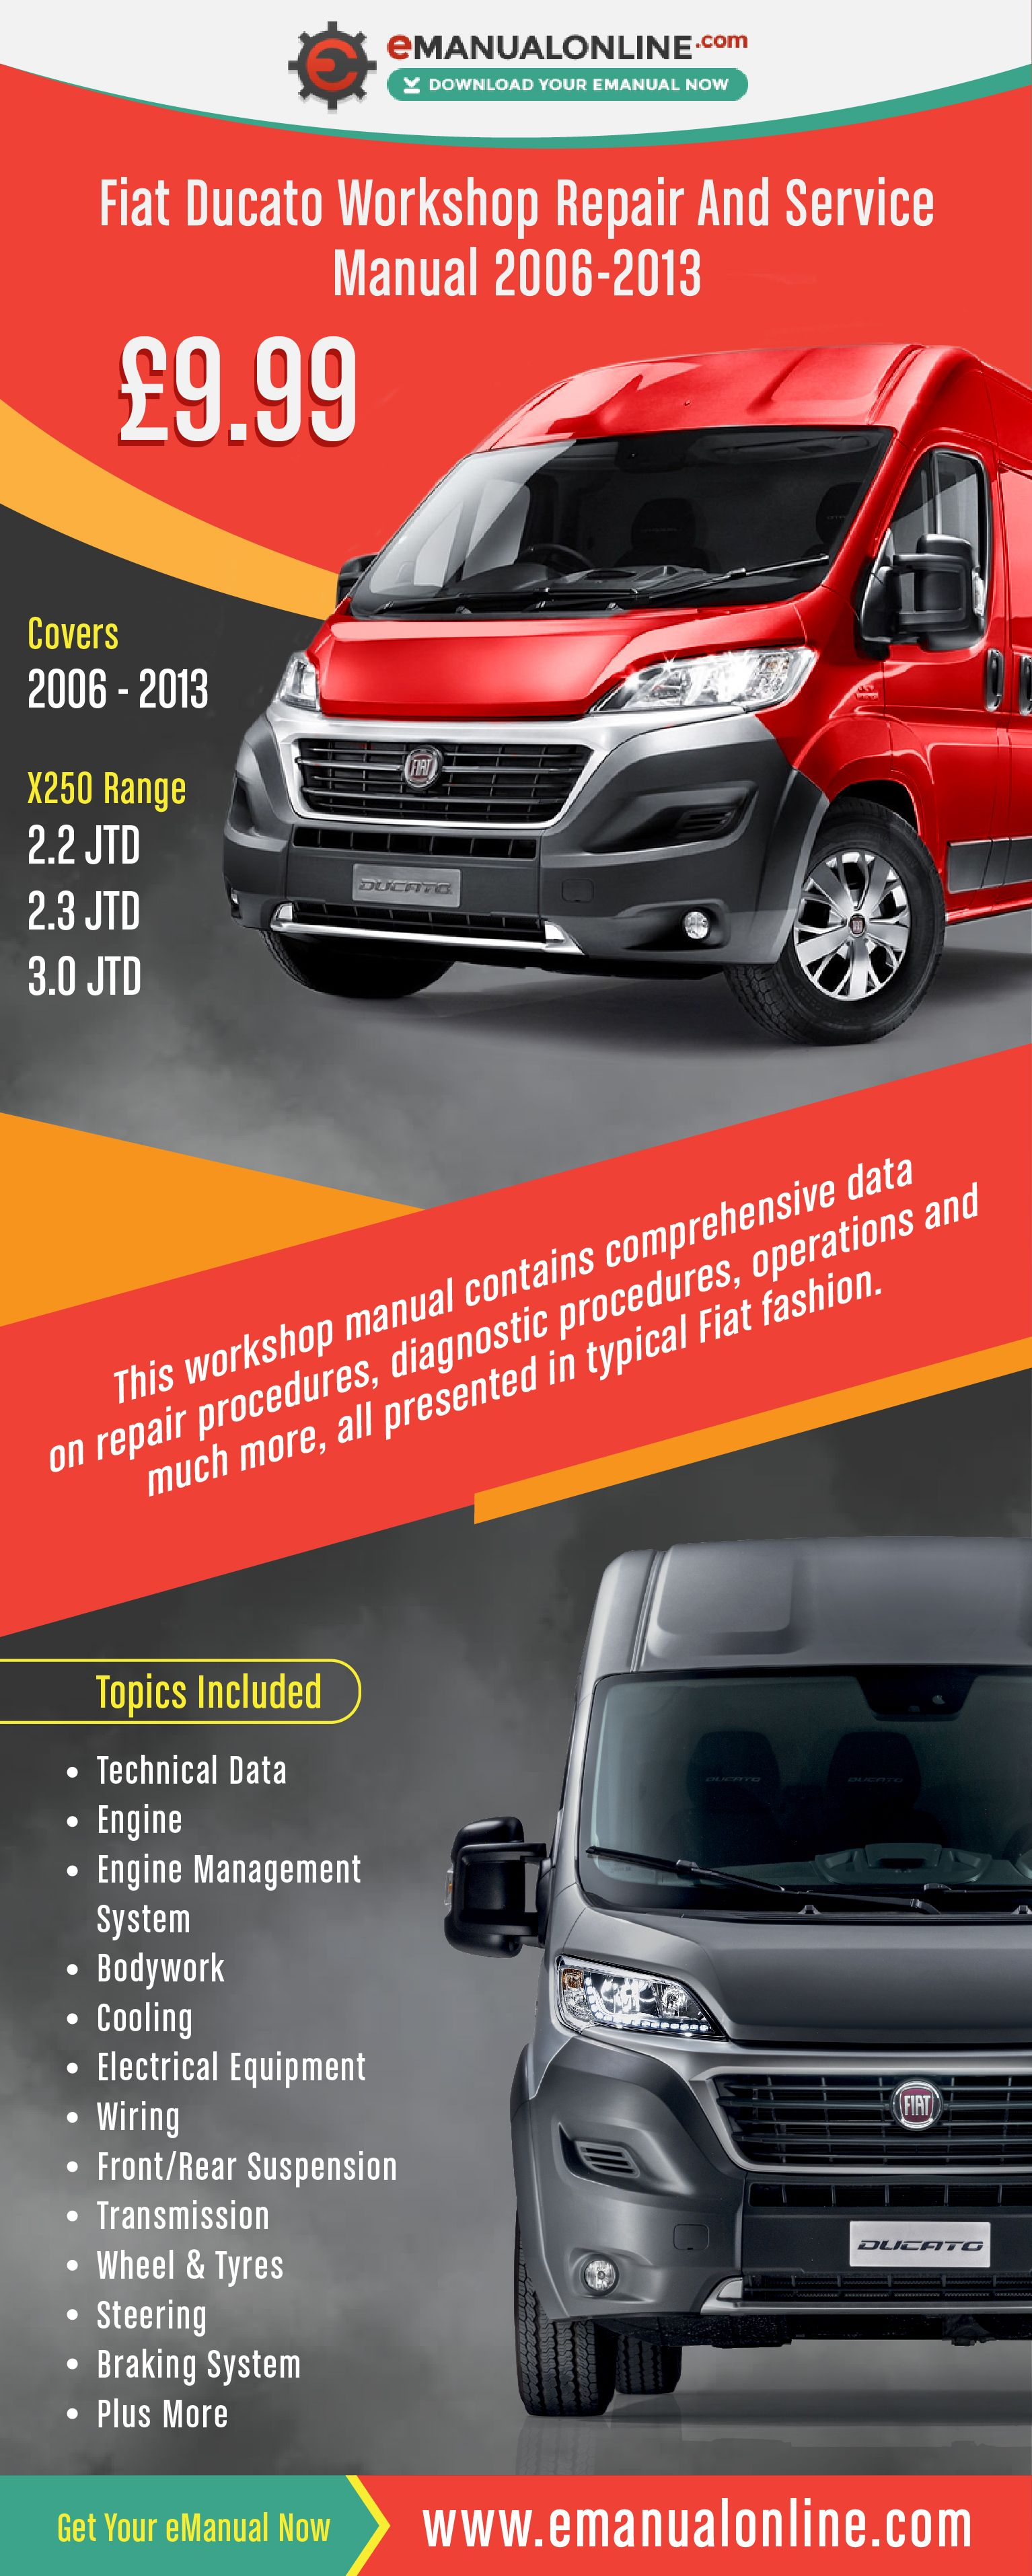 Fiat Ducato Workshop Repair And Service Manual 2006 2013 This Workshop Manual Contains Comprehensive Data On Repair Proc Car Repair Service Fiat Ducato Repair